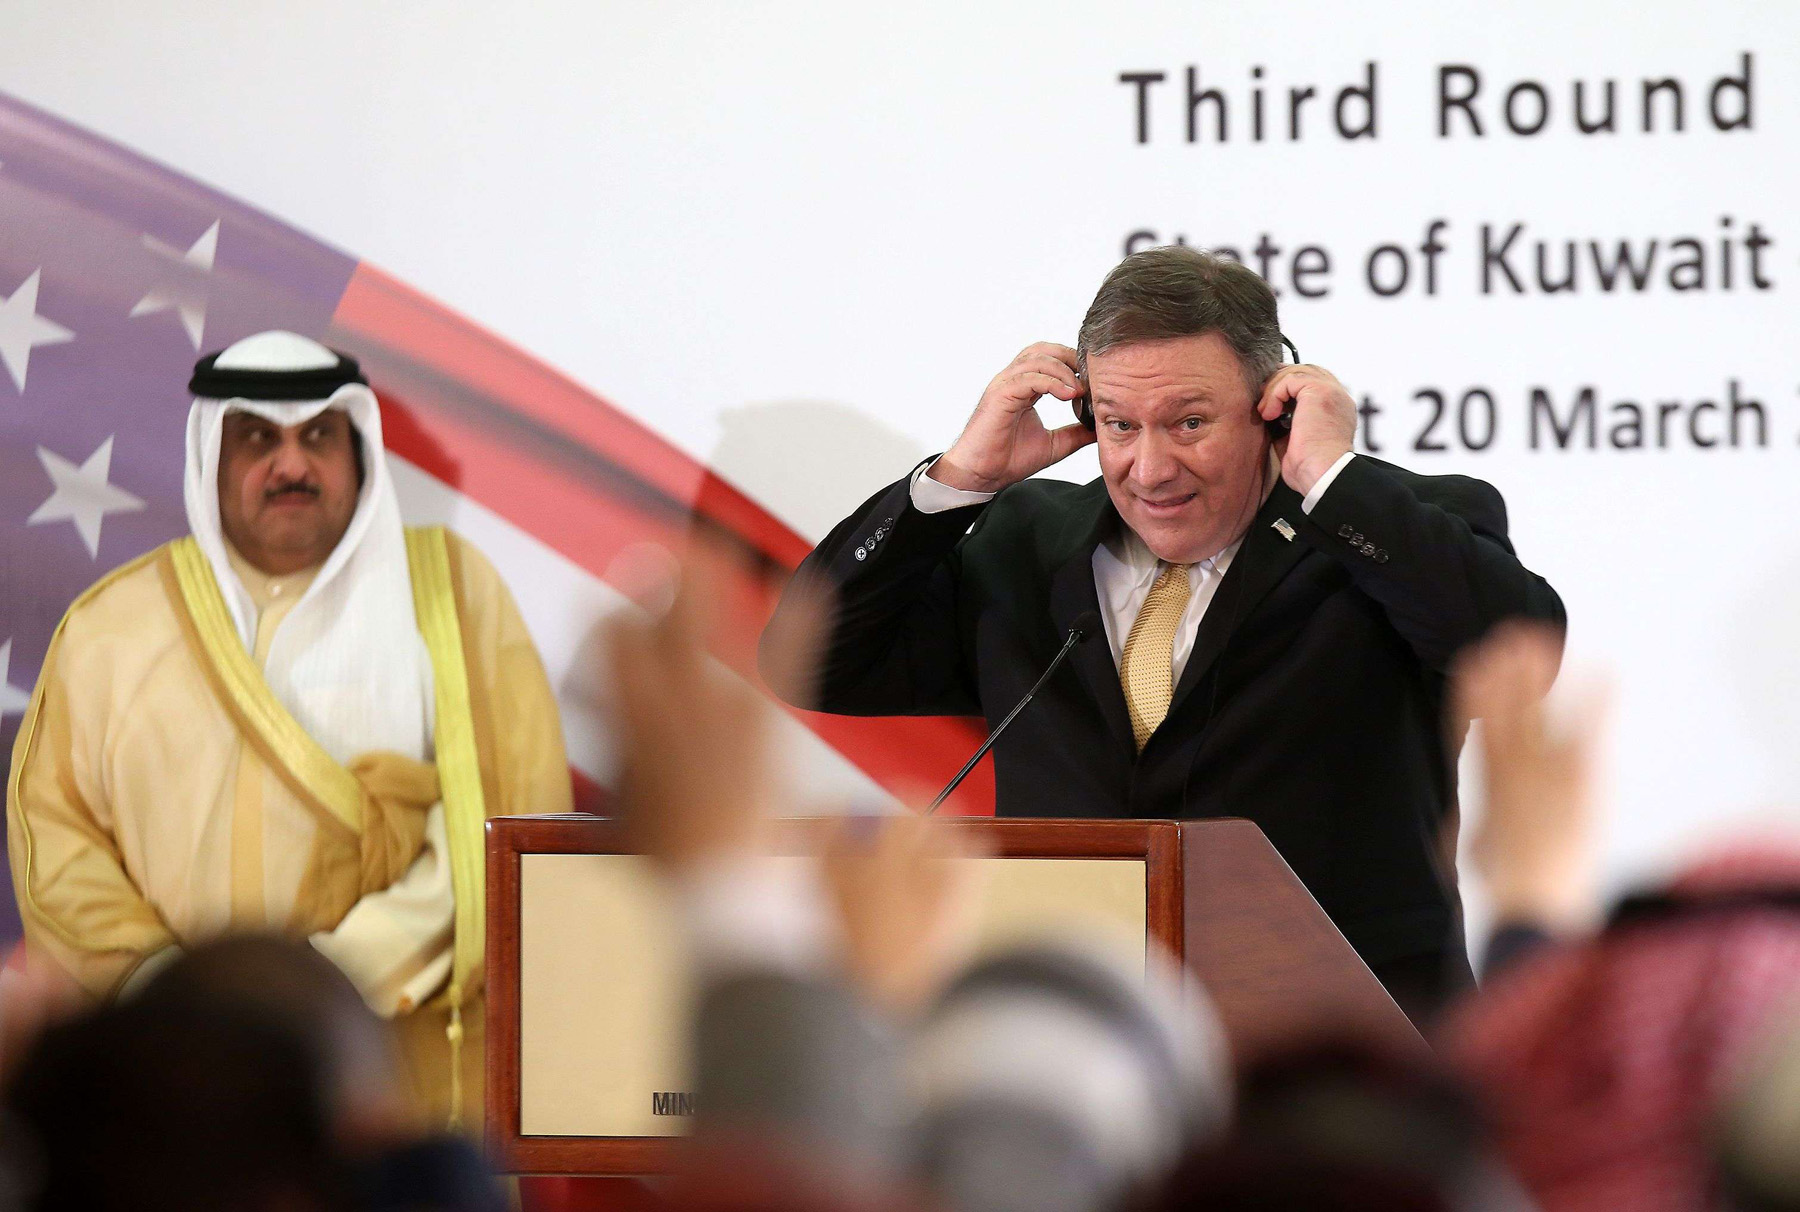 US Secretary of State Mike Pompeo (R) attends a news conference with Kuwait's Foreign Minister Sheikh Sabah al-Khalid al-Sabah in Kuwait City, March 20. (AFP)